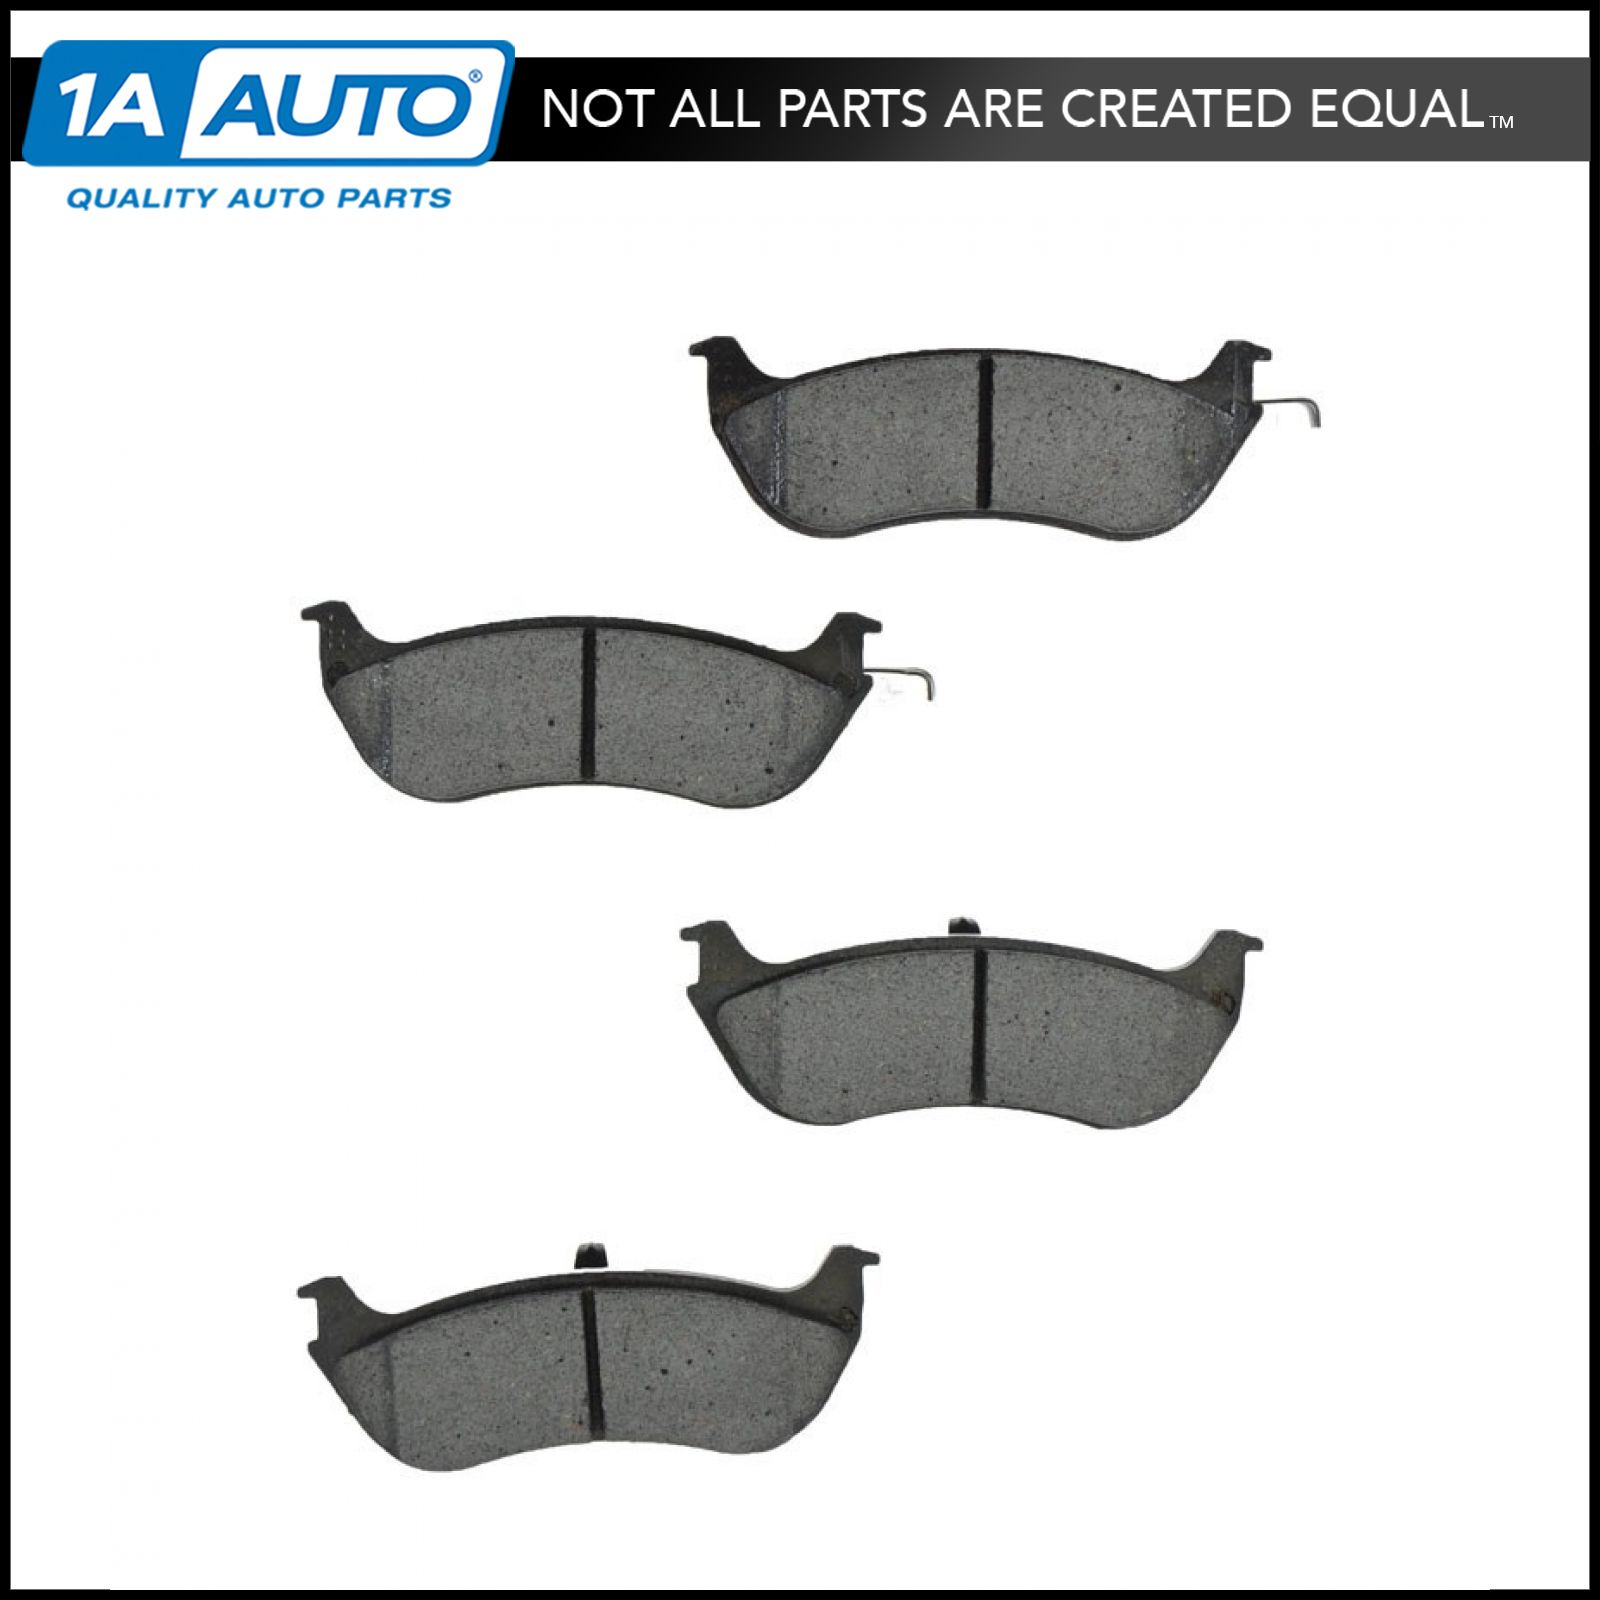 Front Ceramic Brake Pads For 1998-2002 CROWN VICTORIA TOWN CAR GRAND MARQUIS